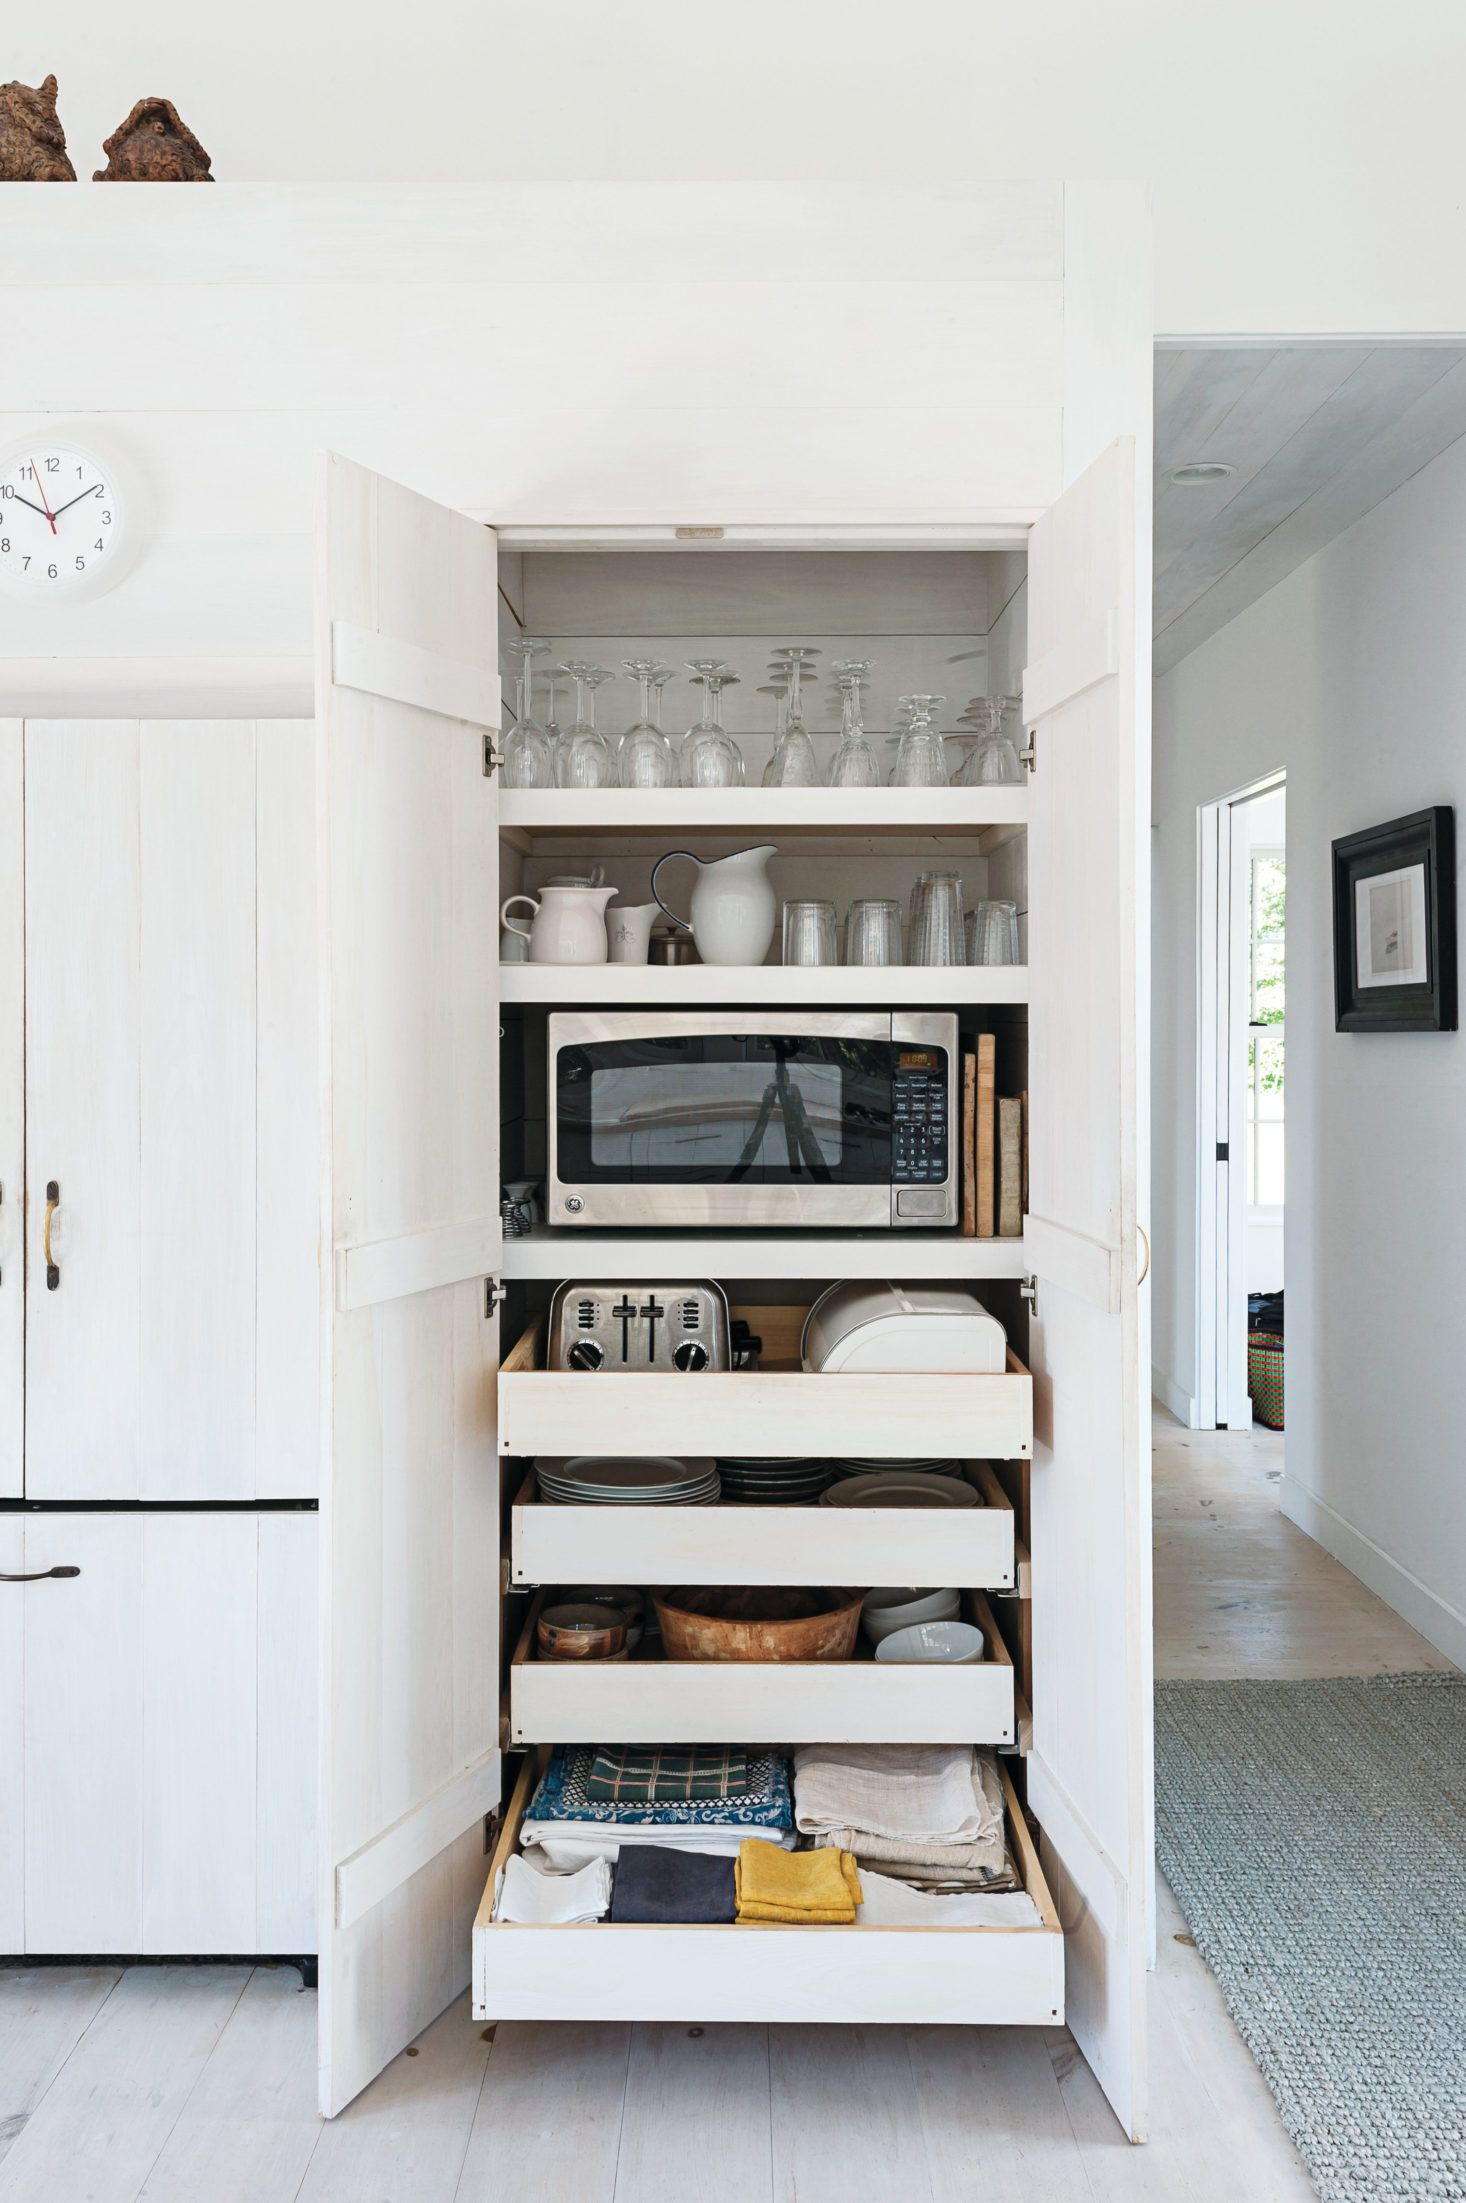 14 Strategies for Hiding the Microwave